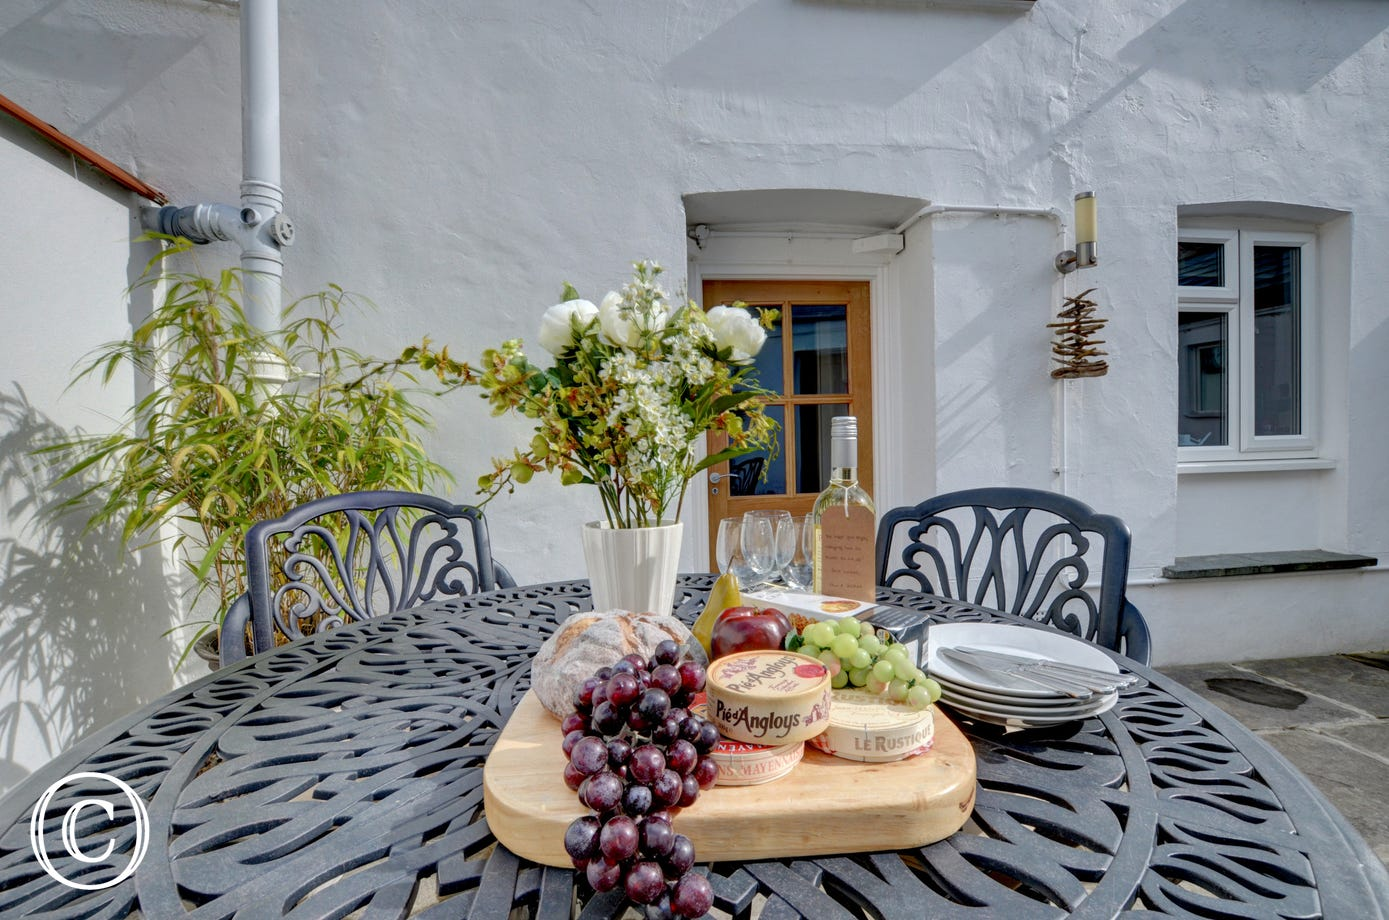 Enjoy a cheese board and a glass of wine on the patio